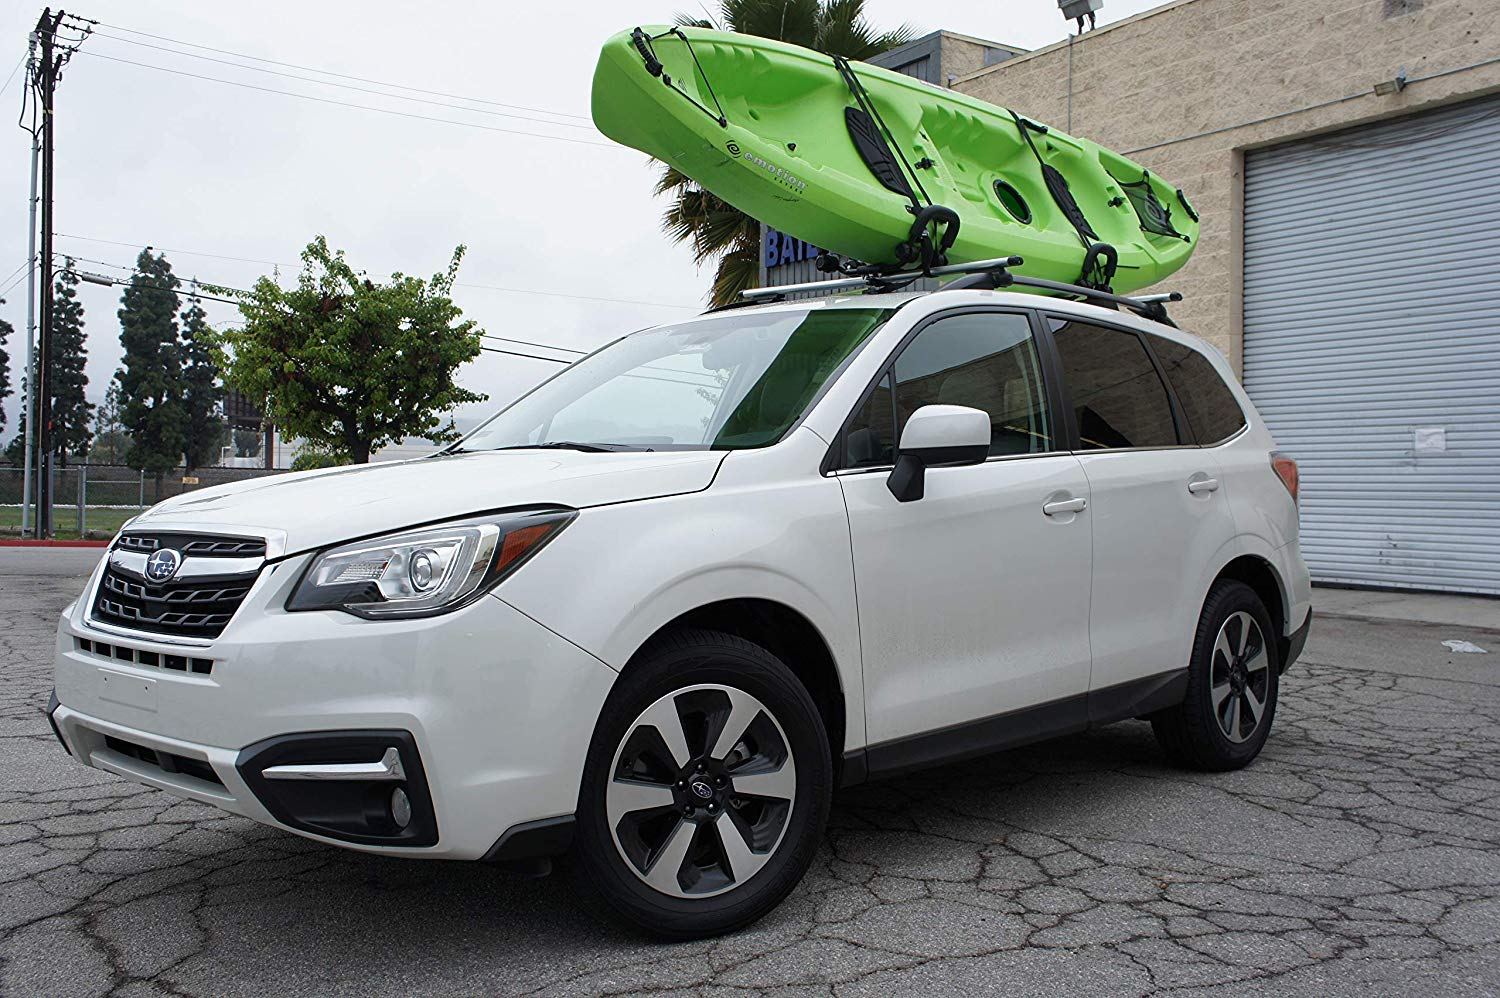 SUP and Kayaks Mounted on Your SUV Car Rack /& Carrier Universal Kayak Carrier Car Roof Rack Set of Two J-Shape Foldable Carrier for Canoe Fits Most Size Crossbar 1 Pair